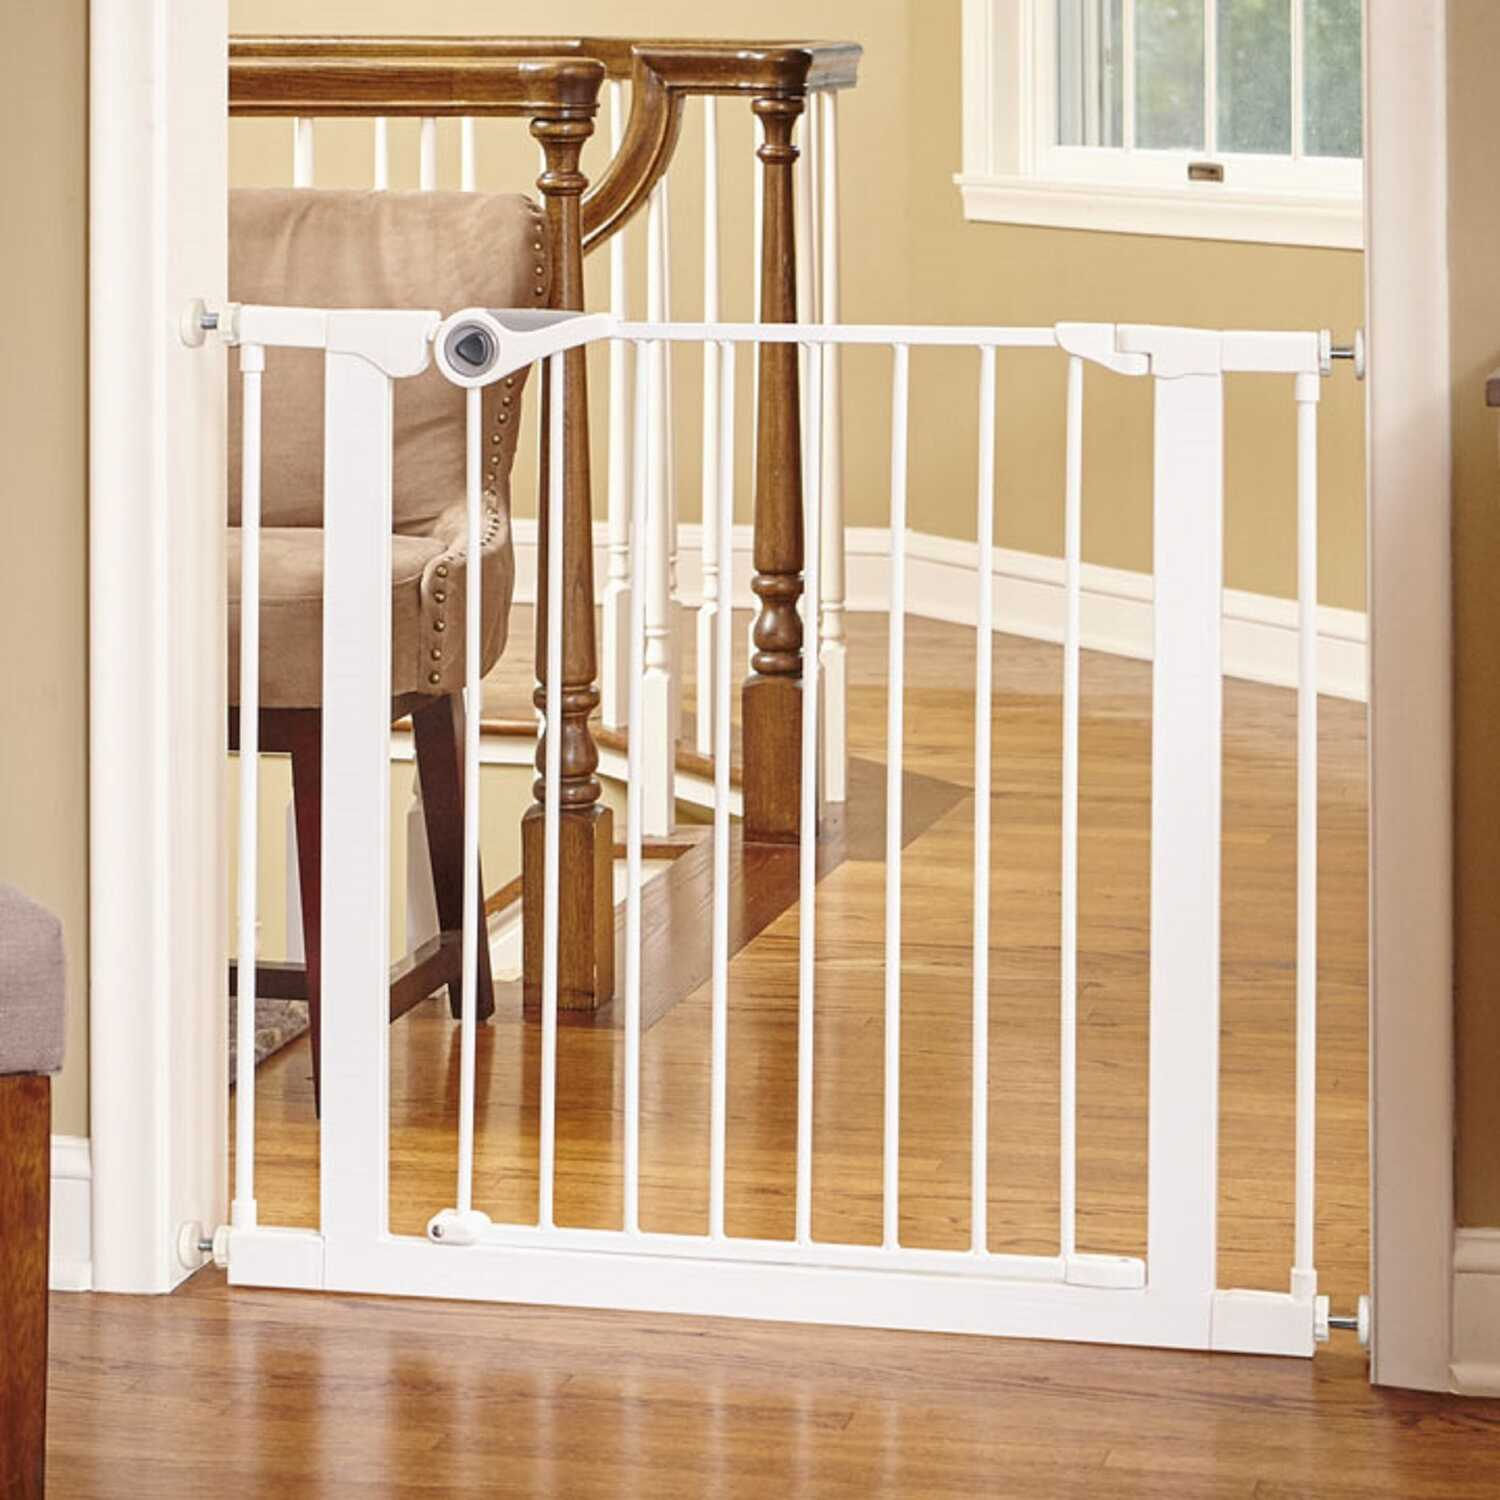 North States  White  30 in. H x 29.5-39  W Metal  Child Safety Gate